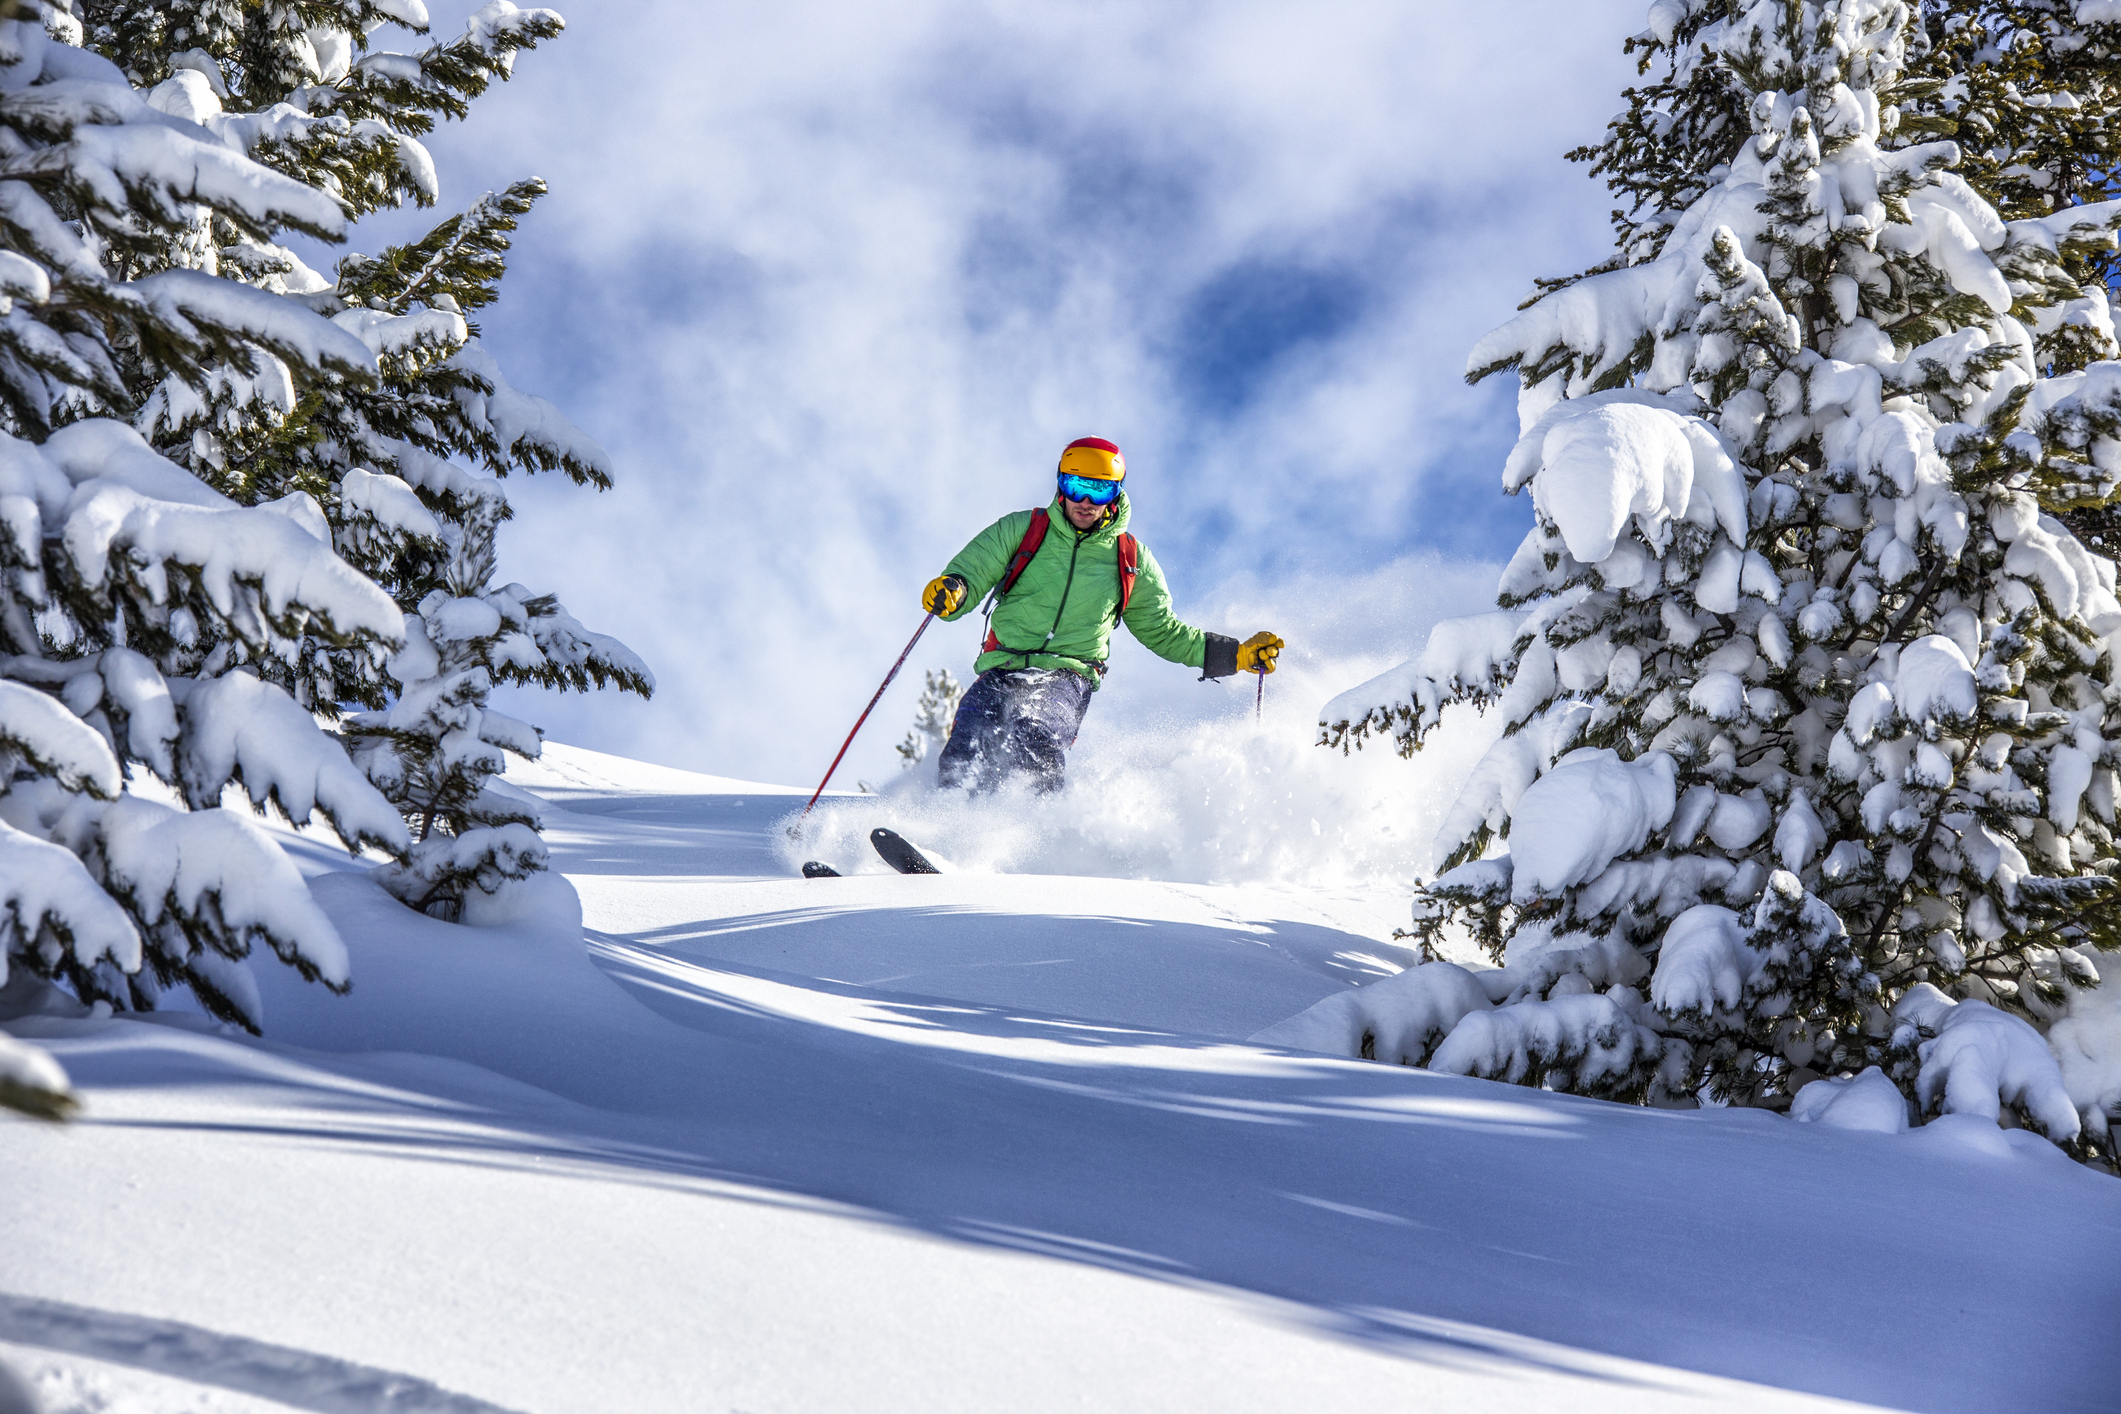 Debunking Common Myths on Ski Accident Liability